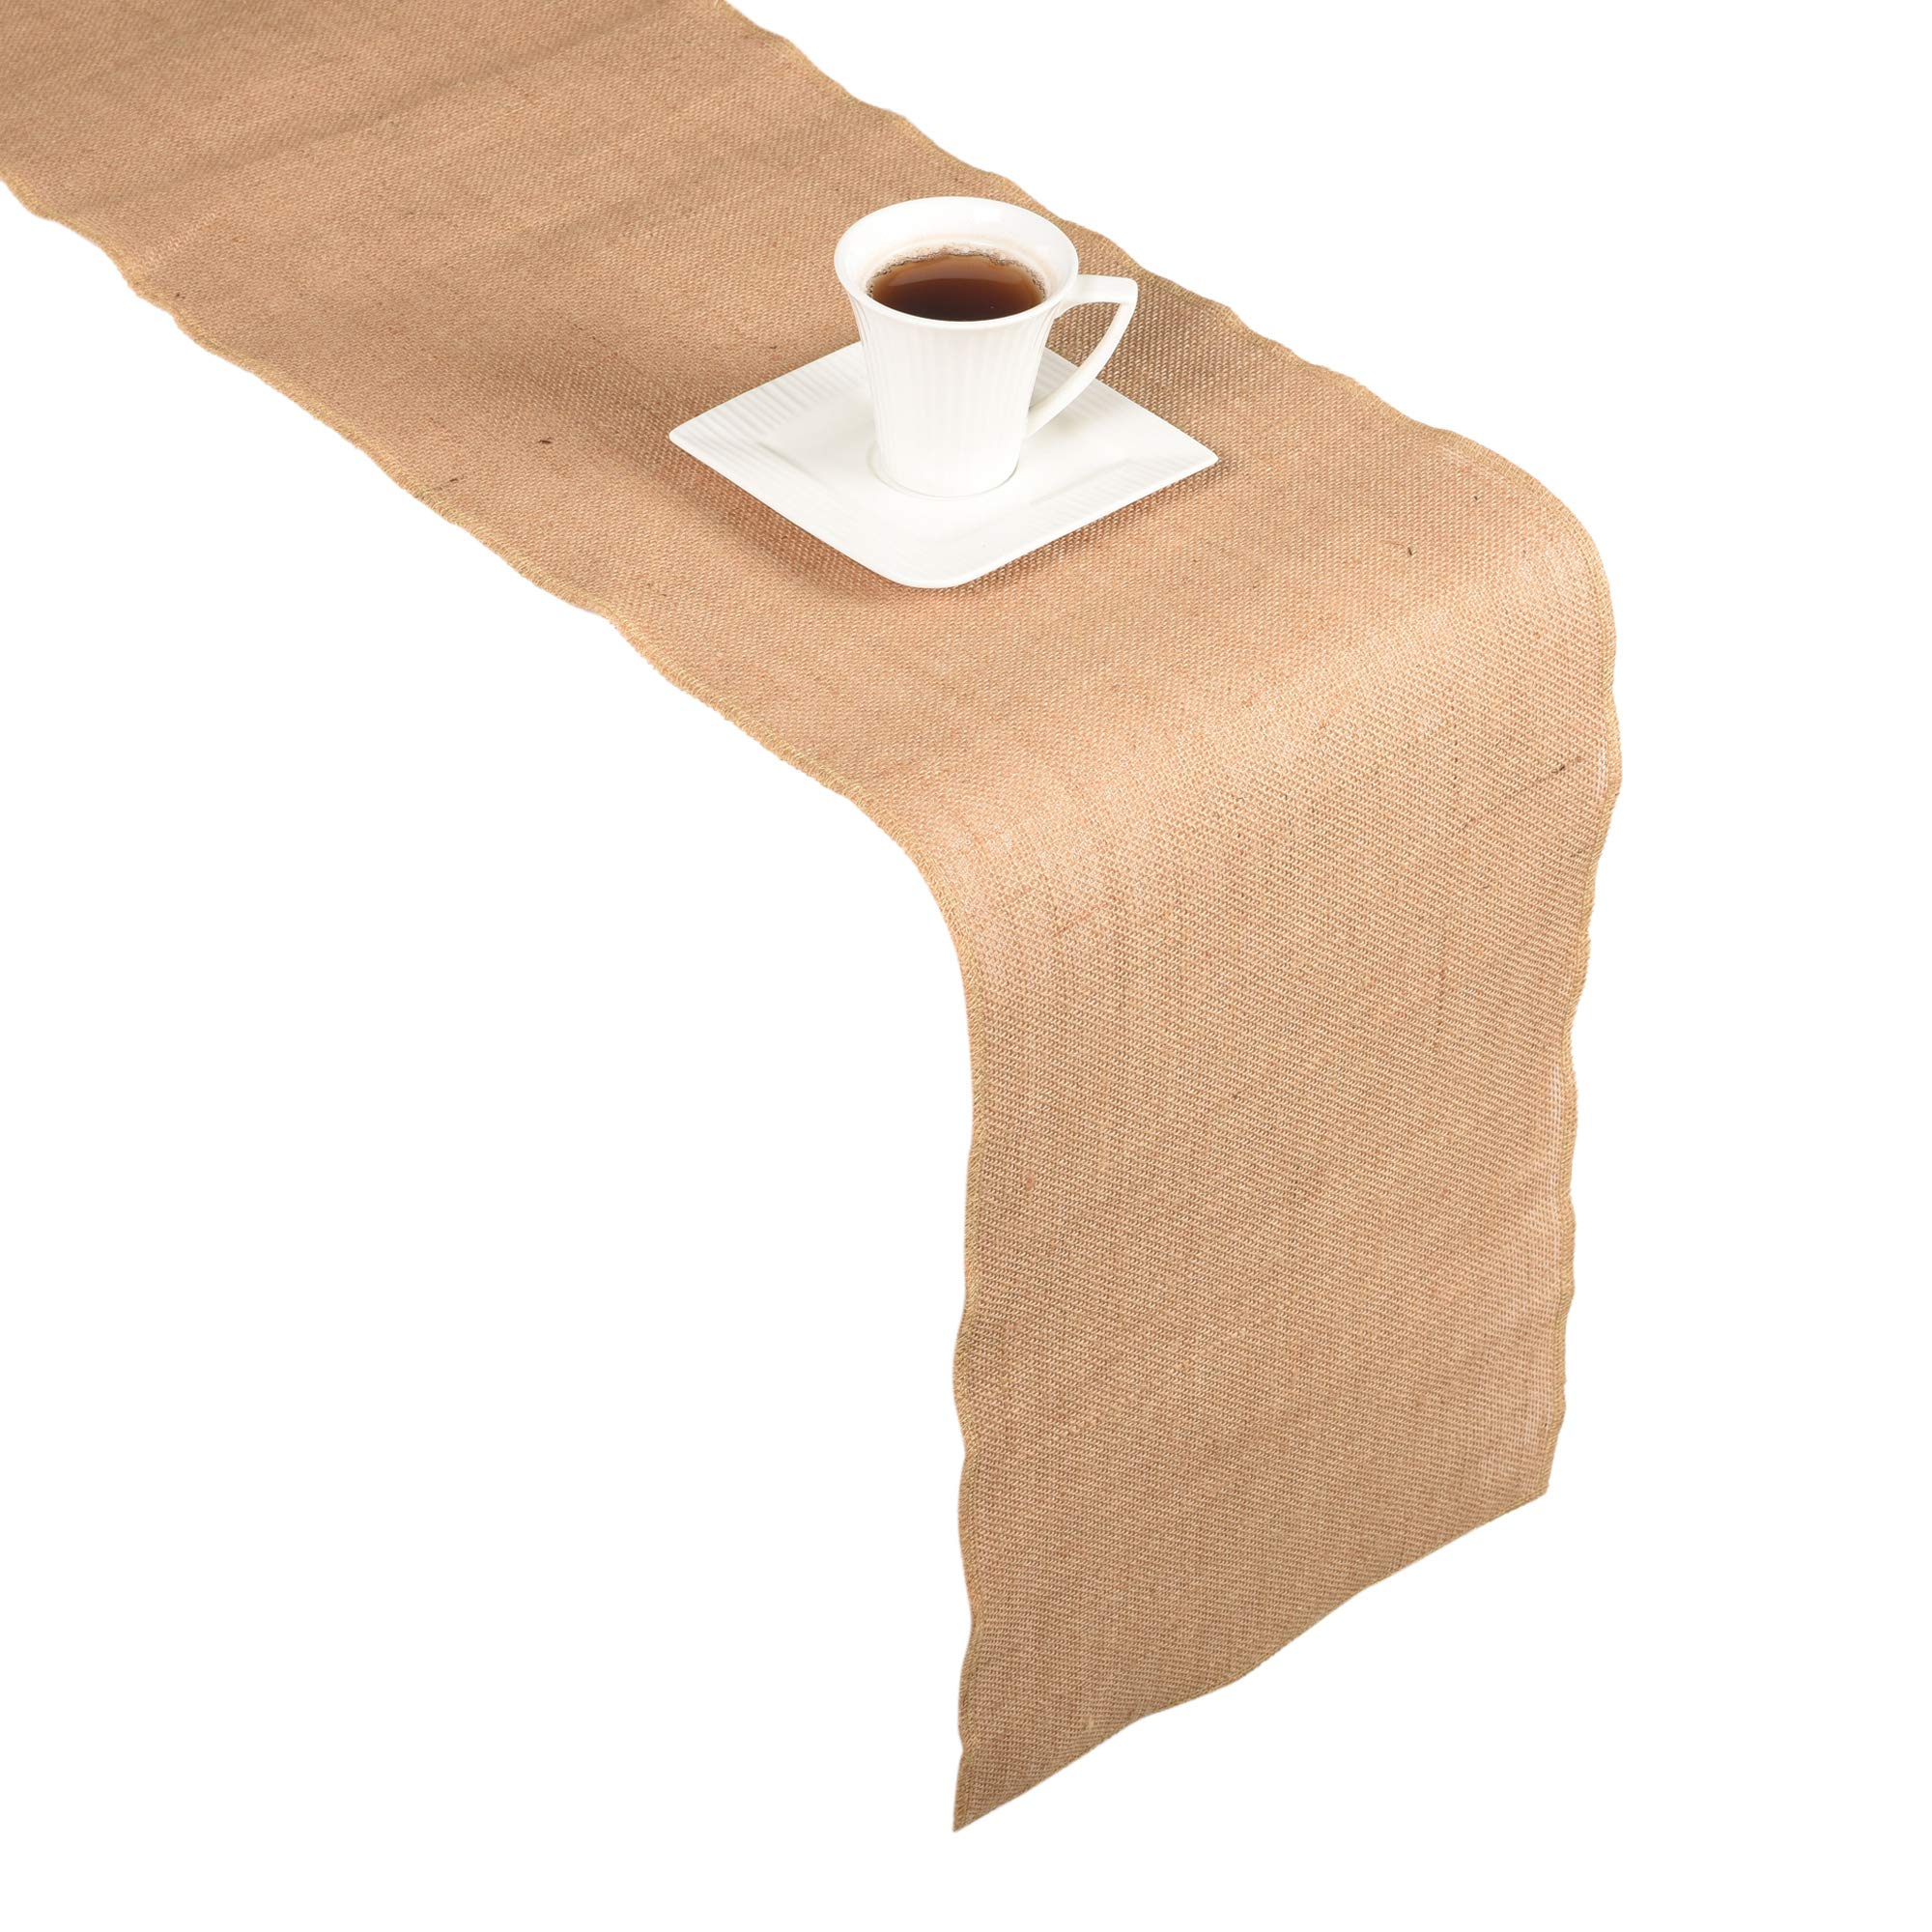 JUCOS Burlap ROLL – NO FRAY Burlap ROLL – Burlap Table Runner – Runners, PLACEMENTS, and Crafts – ECO-Friendly Material – Avoid Messes Completely – 12 INCHES by 108 INCH Burlap ROLL